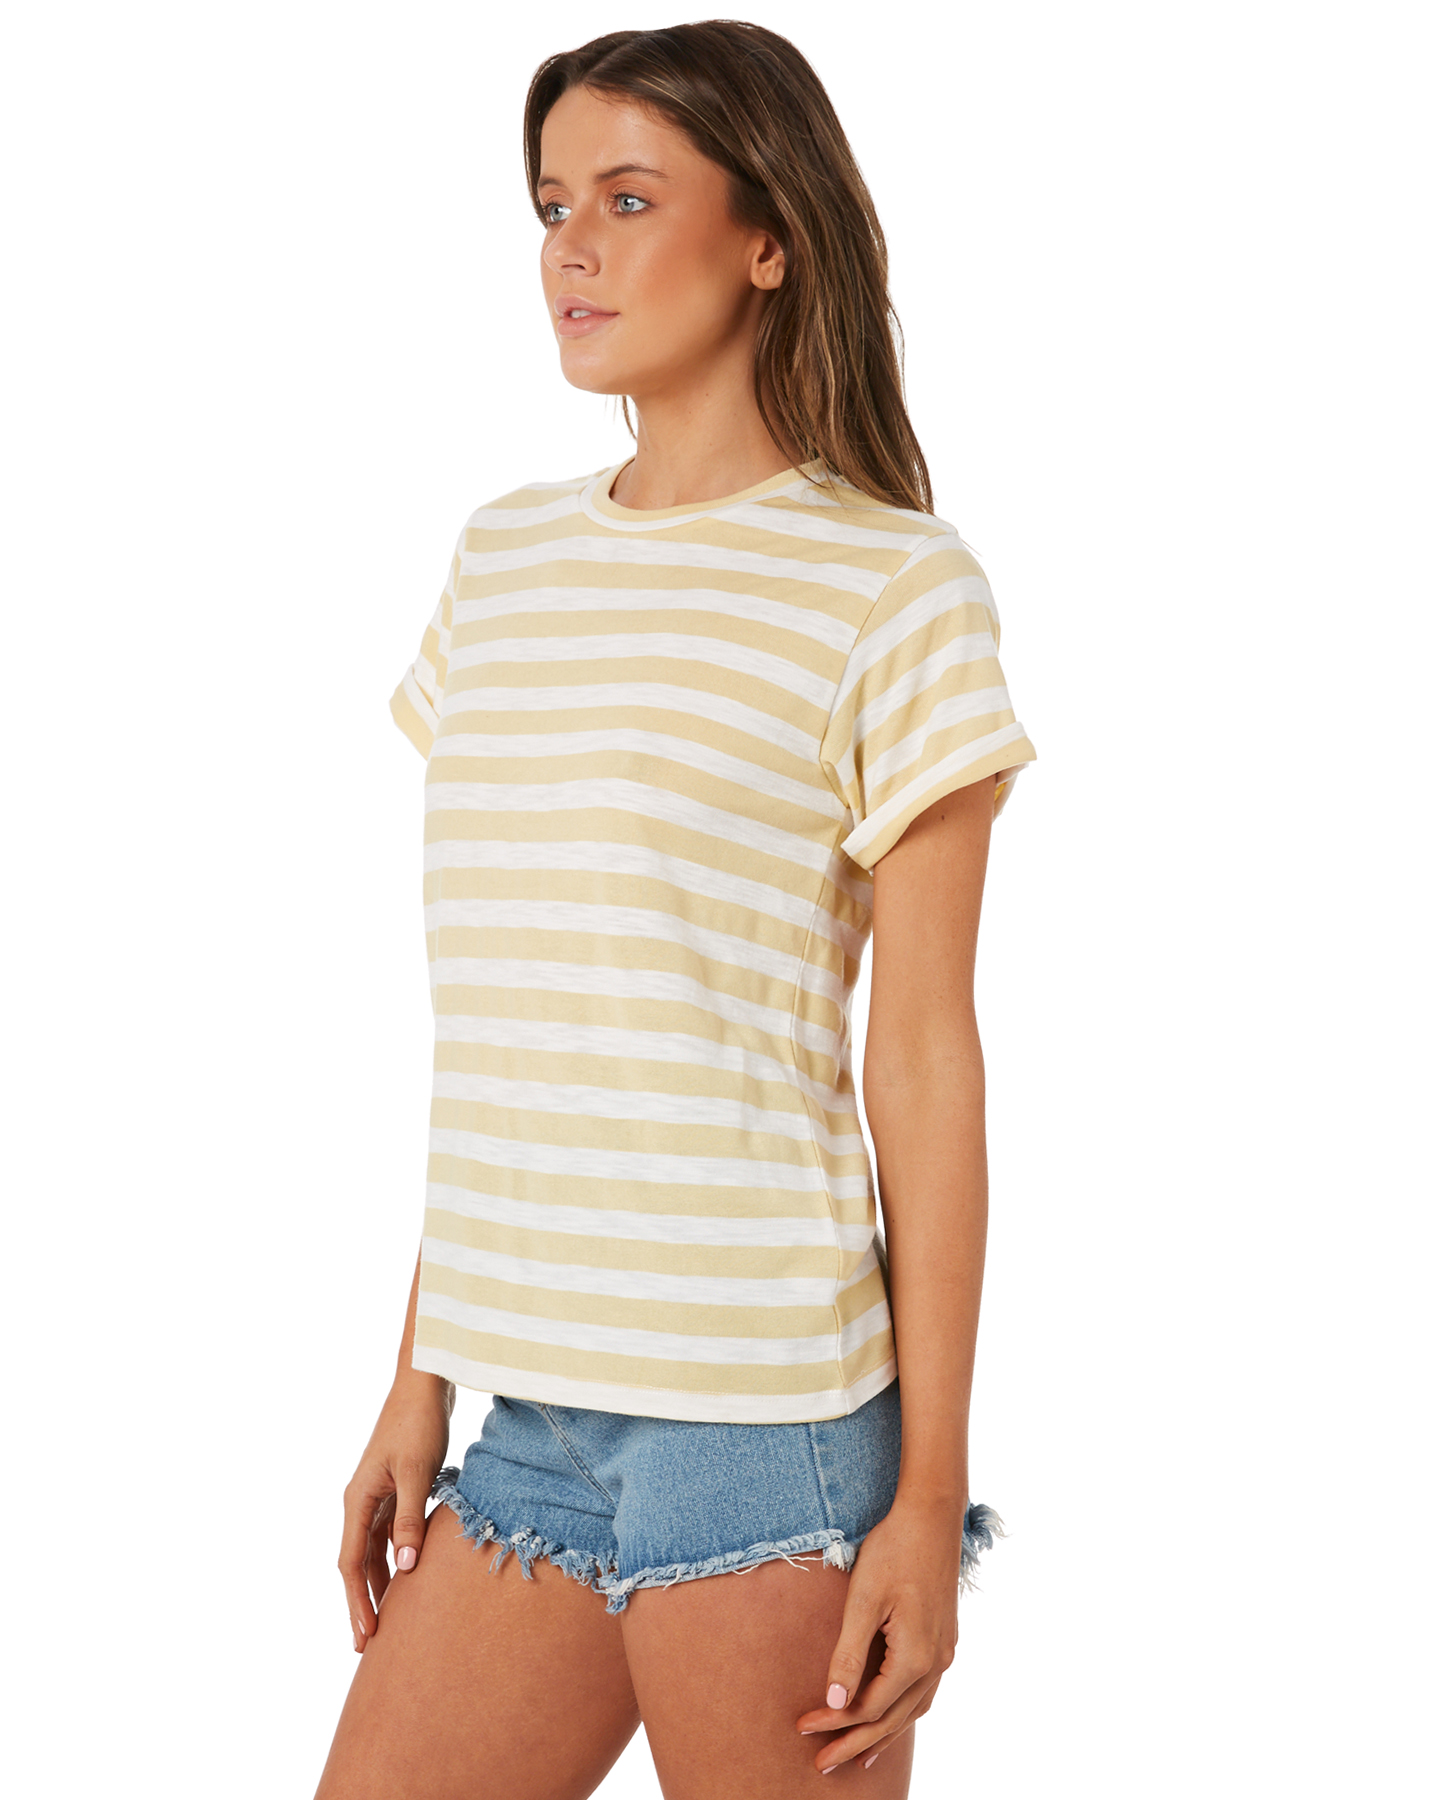 New-Swell-Women-039-s-Ginger-Boyfriend-Tee-Crew-Neck-Short-Sleeve-Cotton-Red thumbnail 7